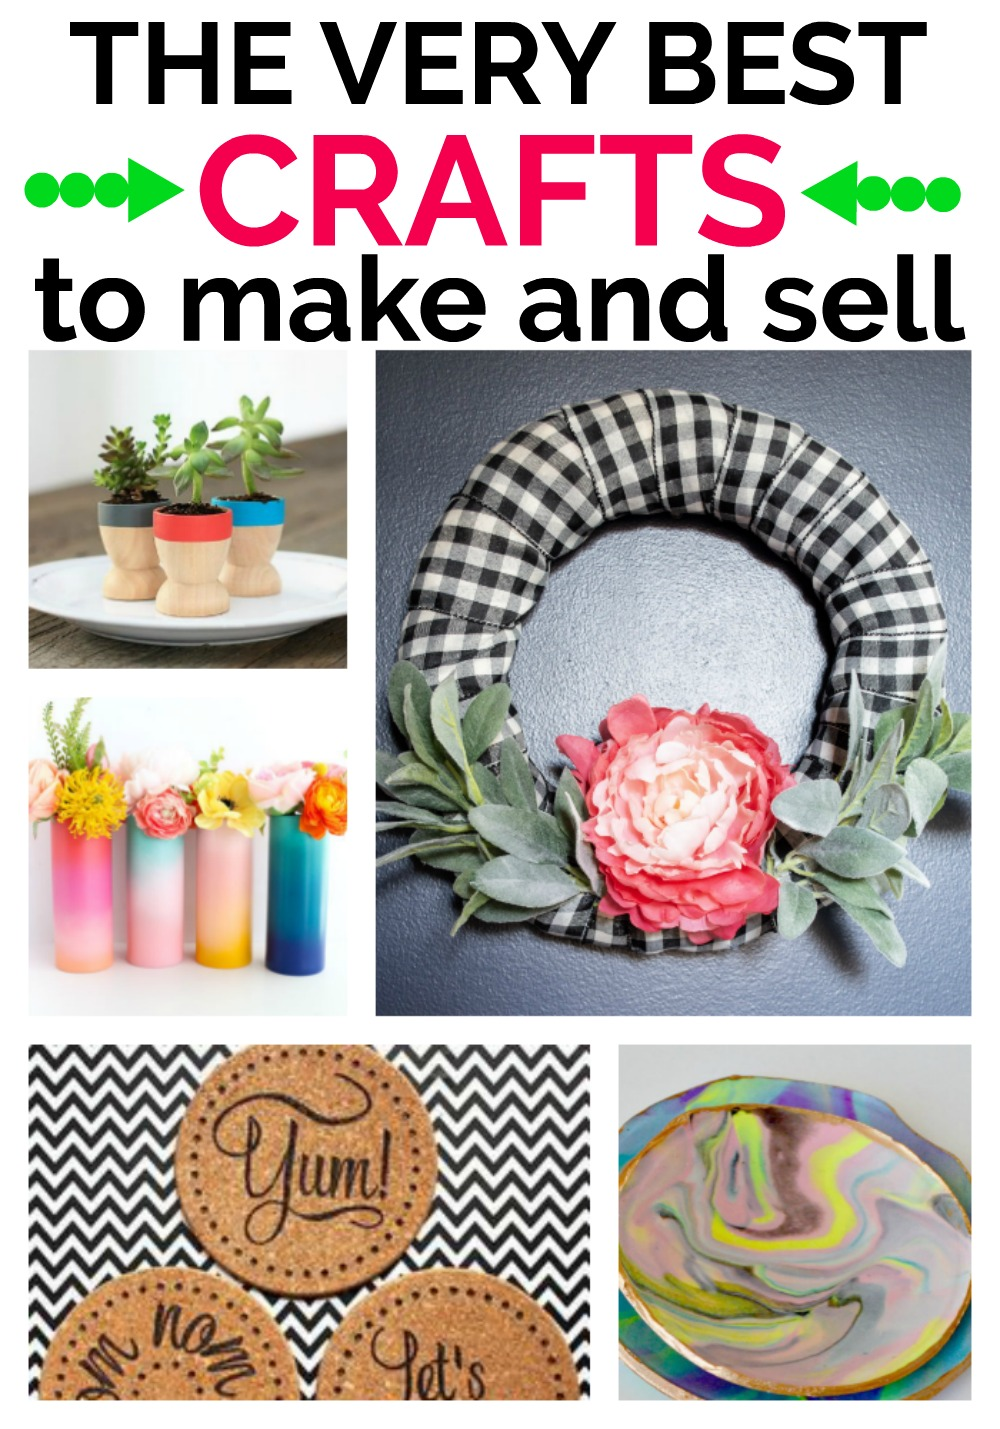 13 Awesome Crafts To Earn Some Extra Cash